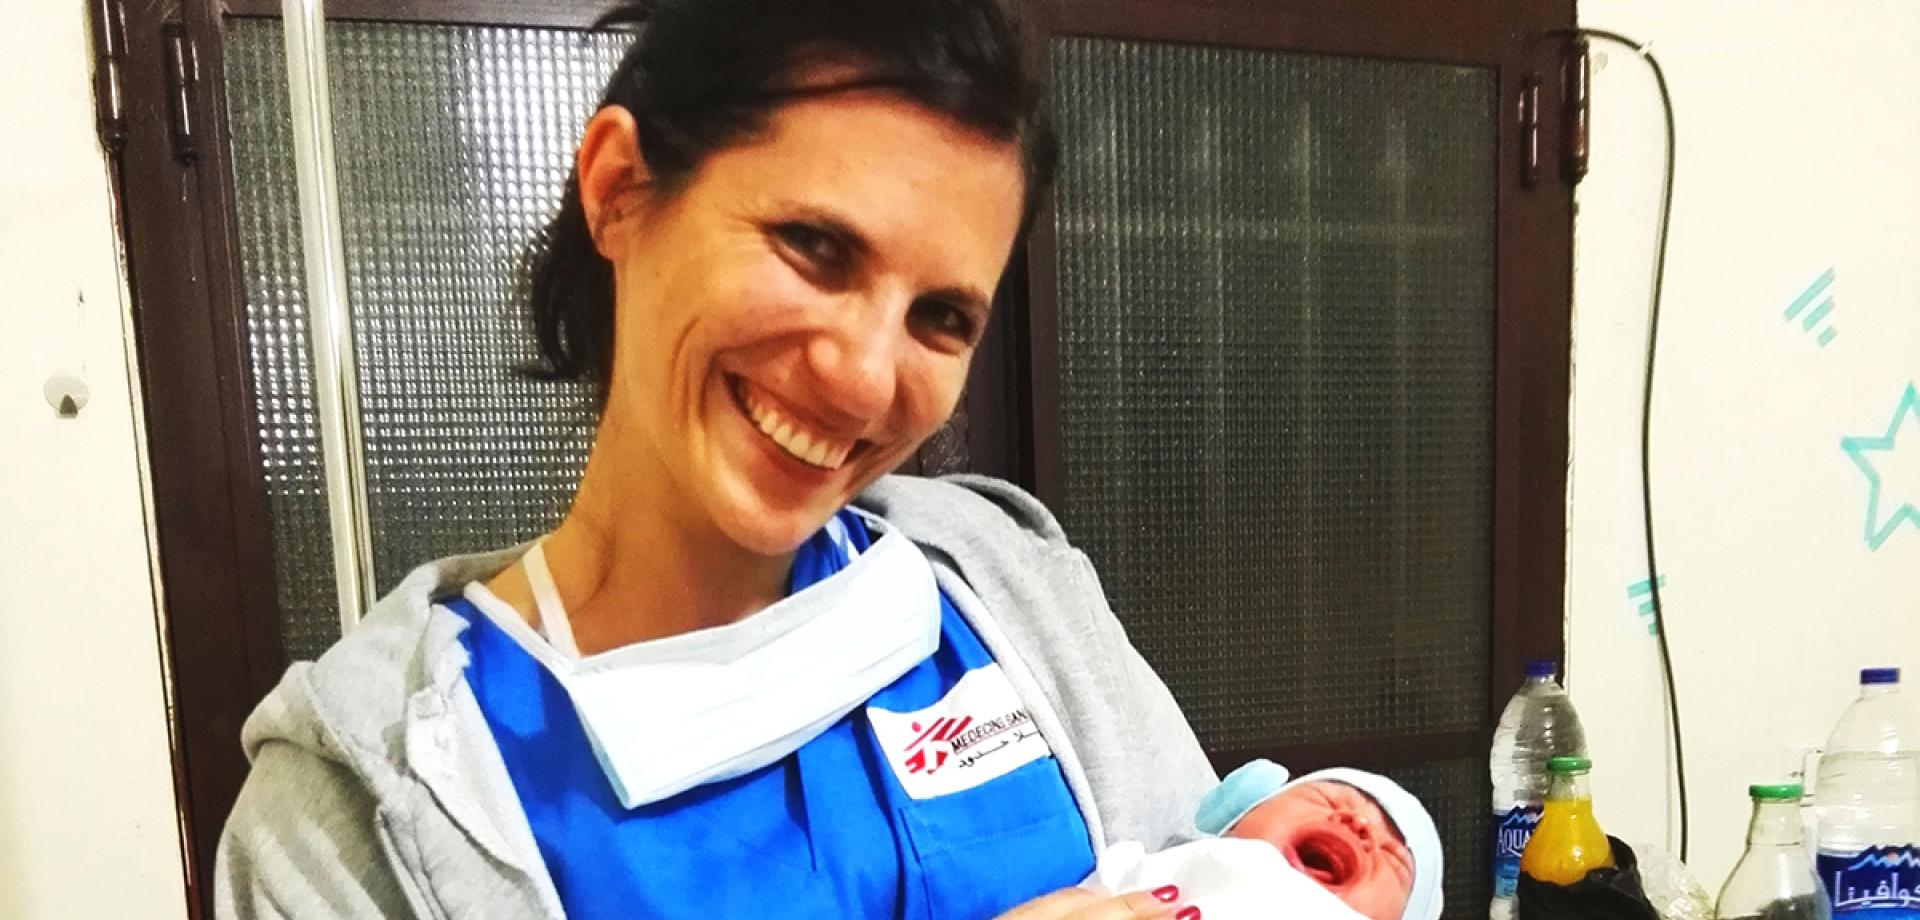 Nicole Bachtold holds a newborn baby